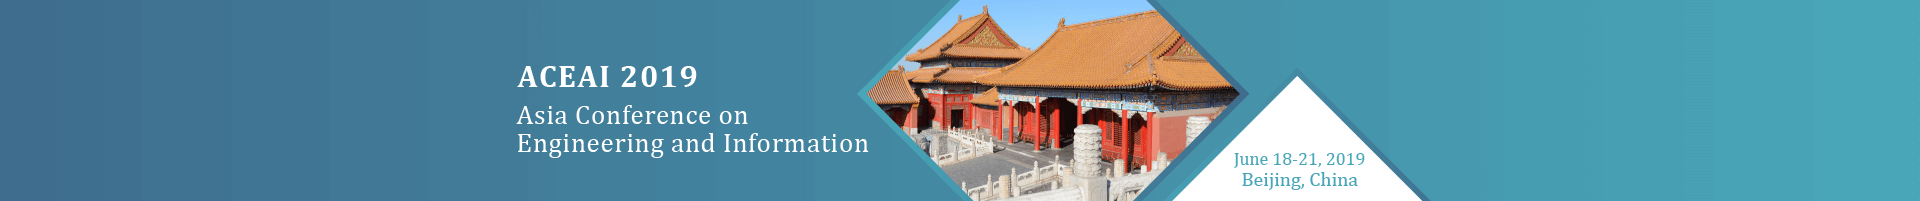 2019 ACEAI  Asia Conference on Engineering and Information, Beijing, China